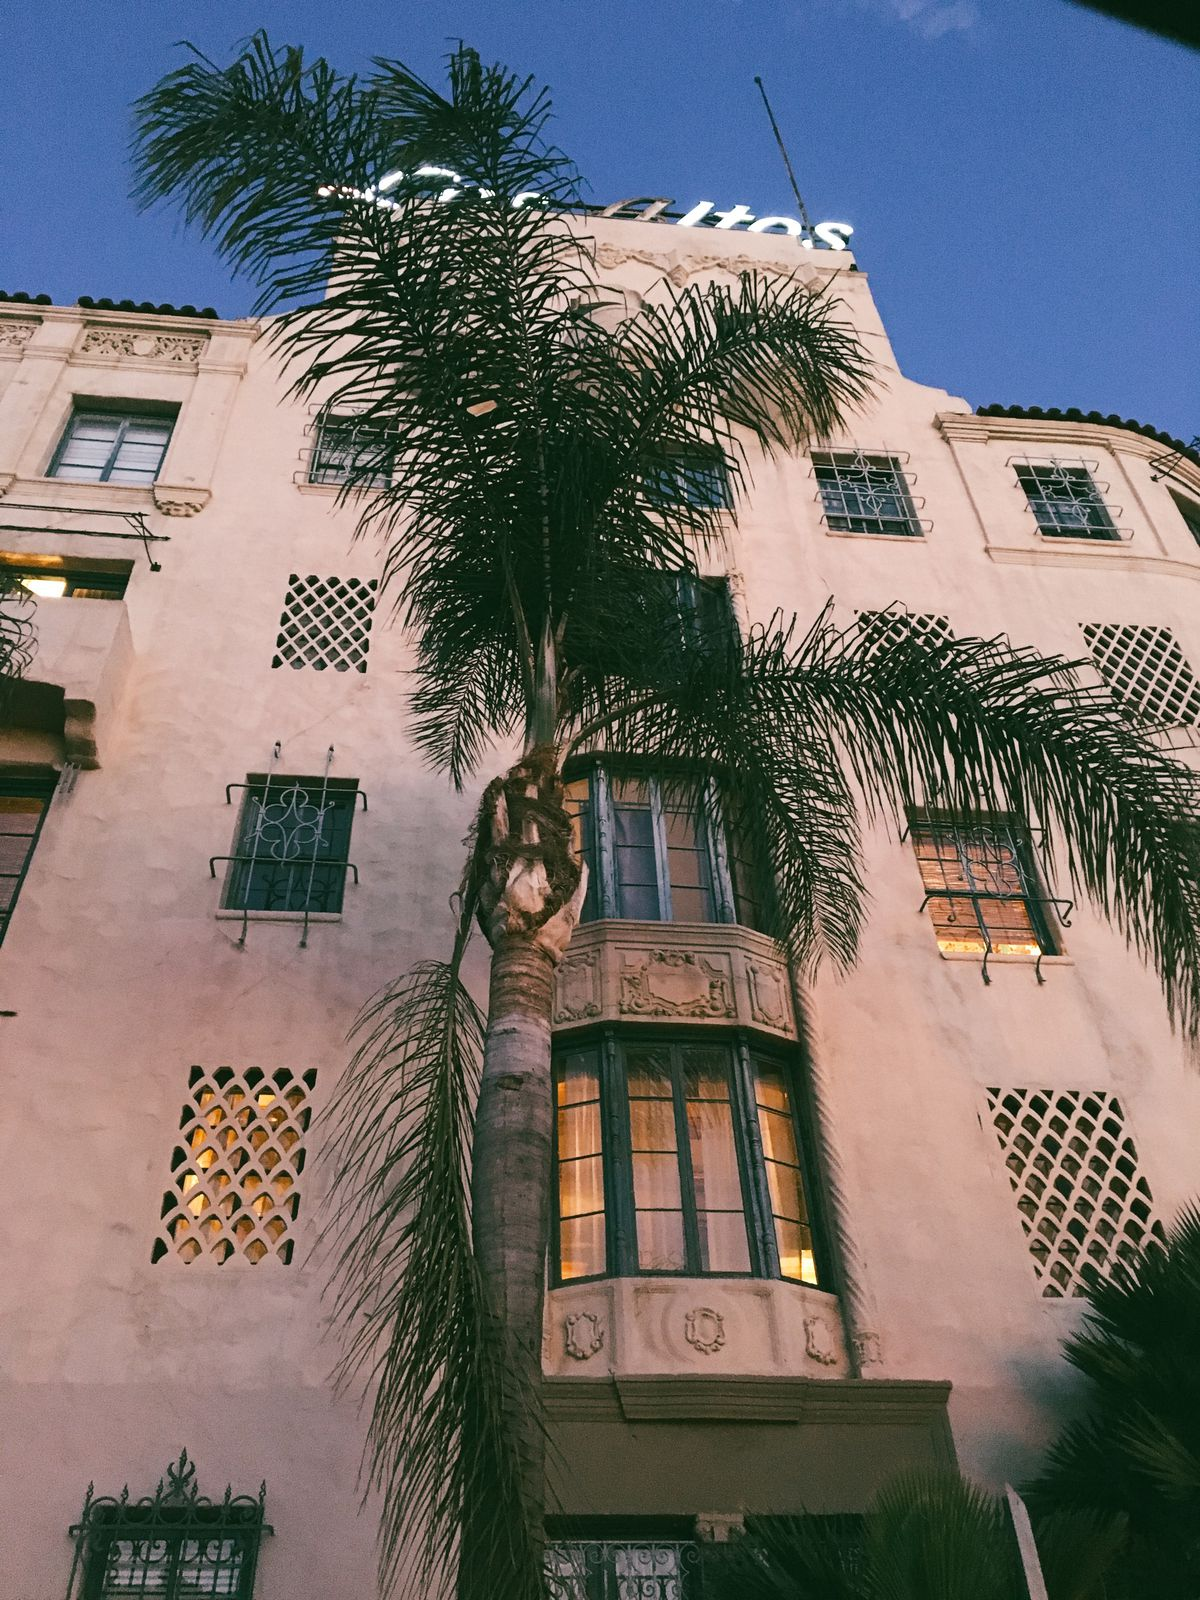 A tall palm tree is situated in front of a tall, light-pink building with many windows.